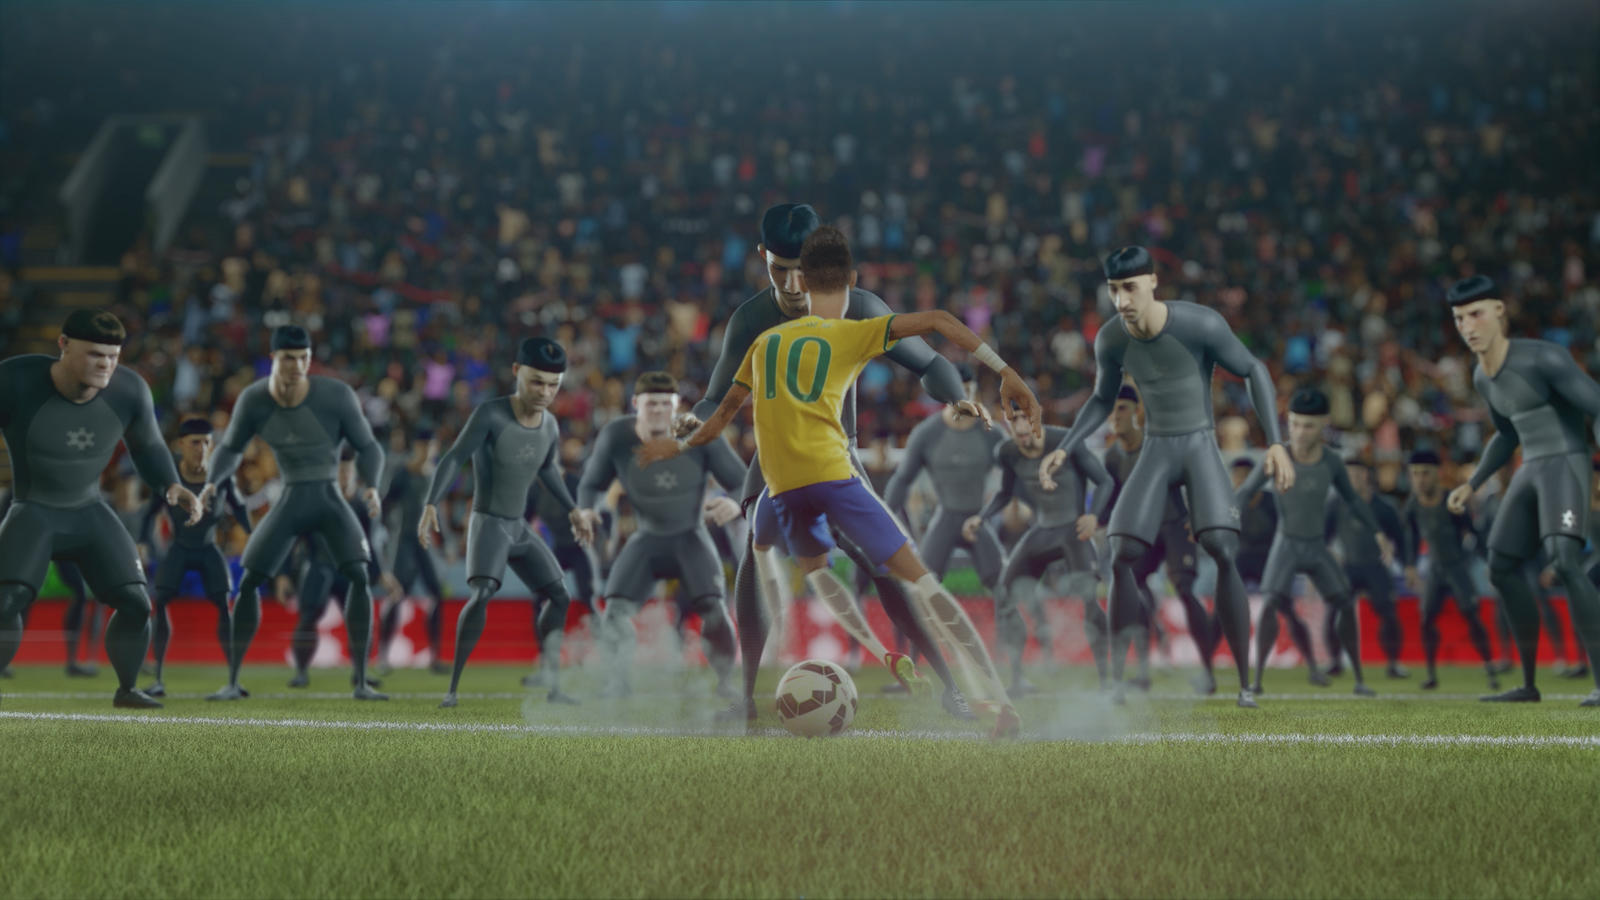 Neymar Jr. stars in The Last Game by Nike Football